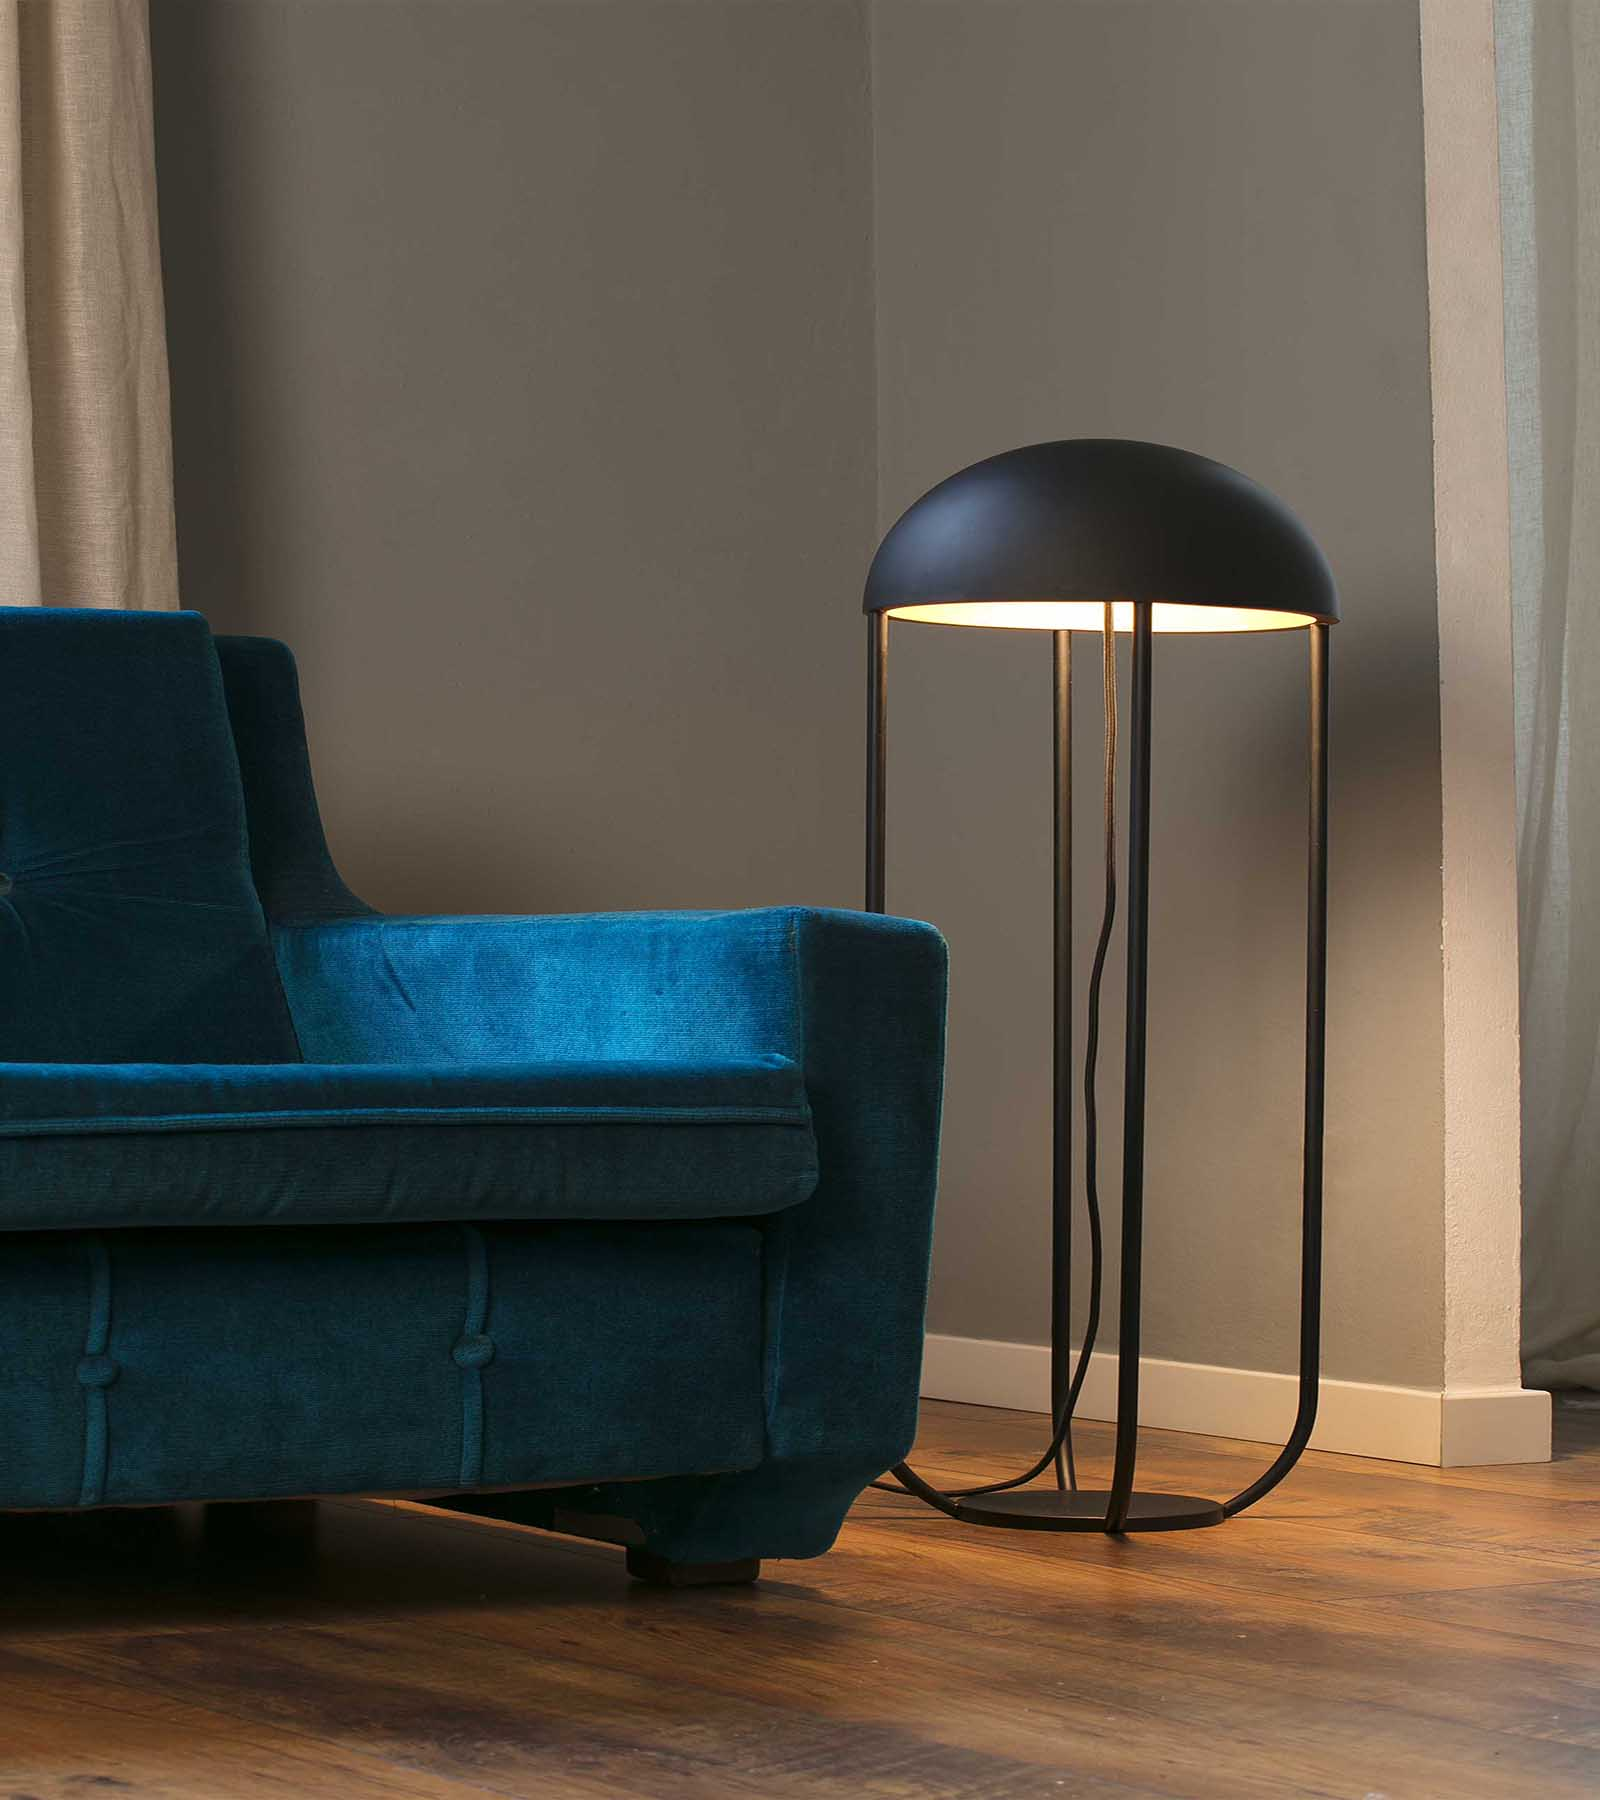 More information of JELLYFISH floor lamp - Faro